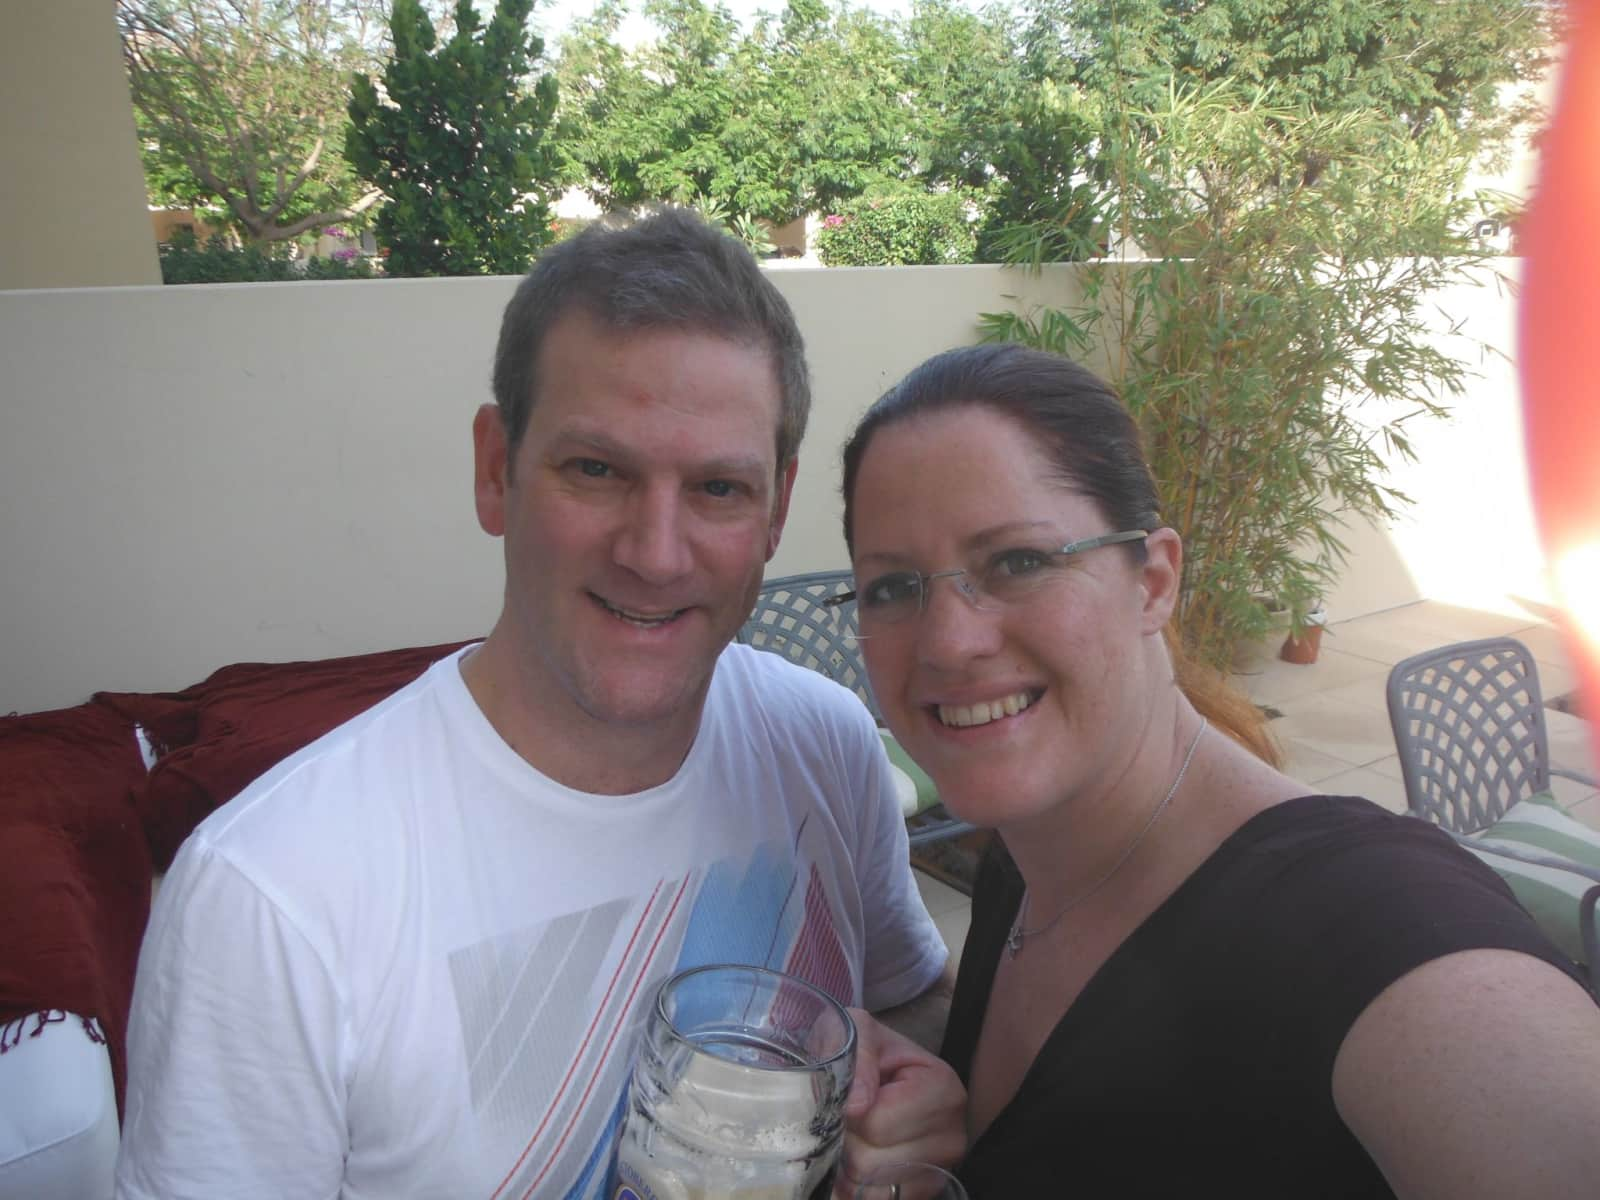 Amanda & David from Dubai, United Arab Emirates